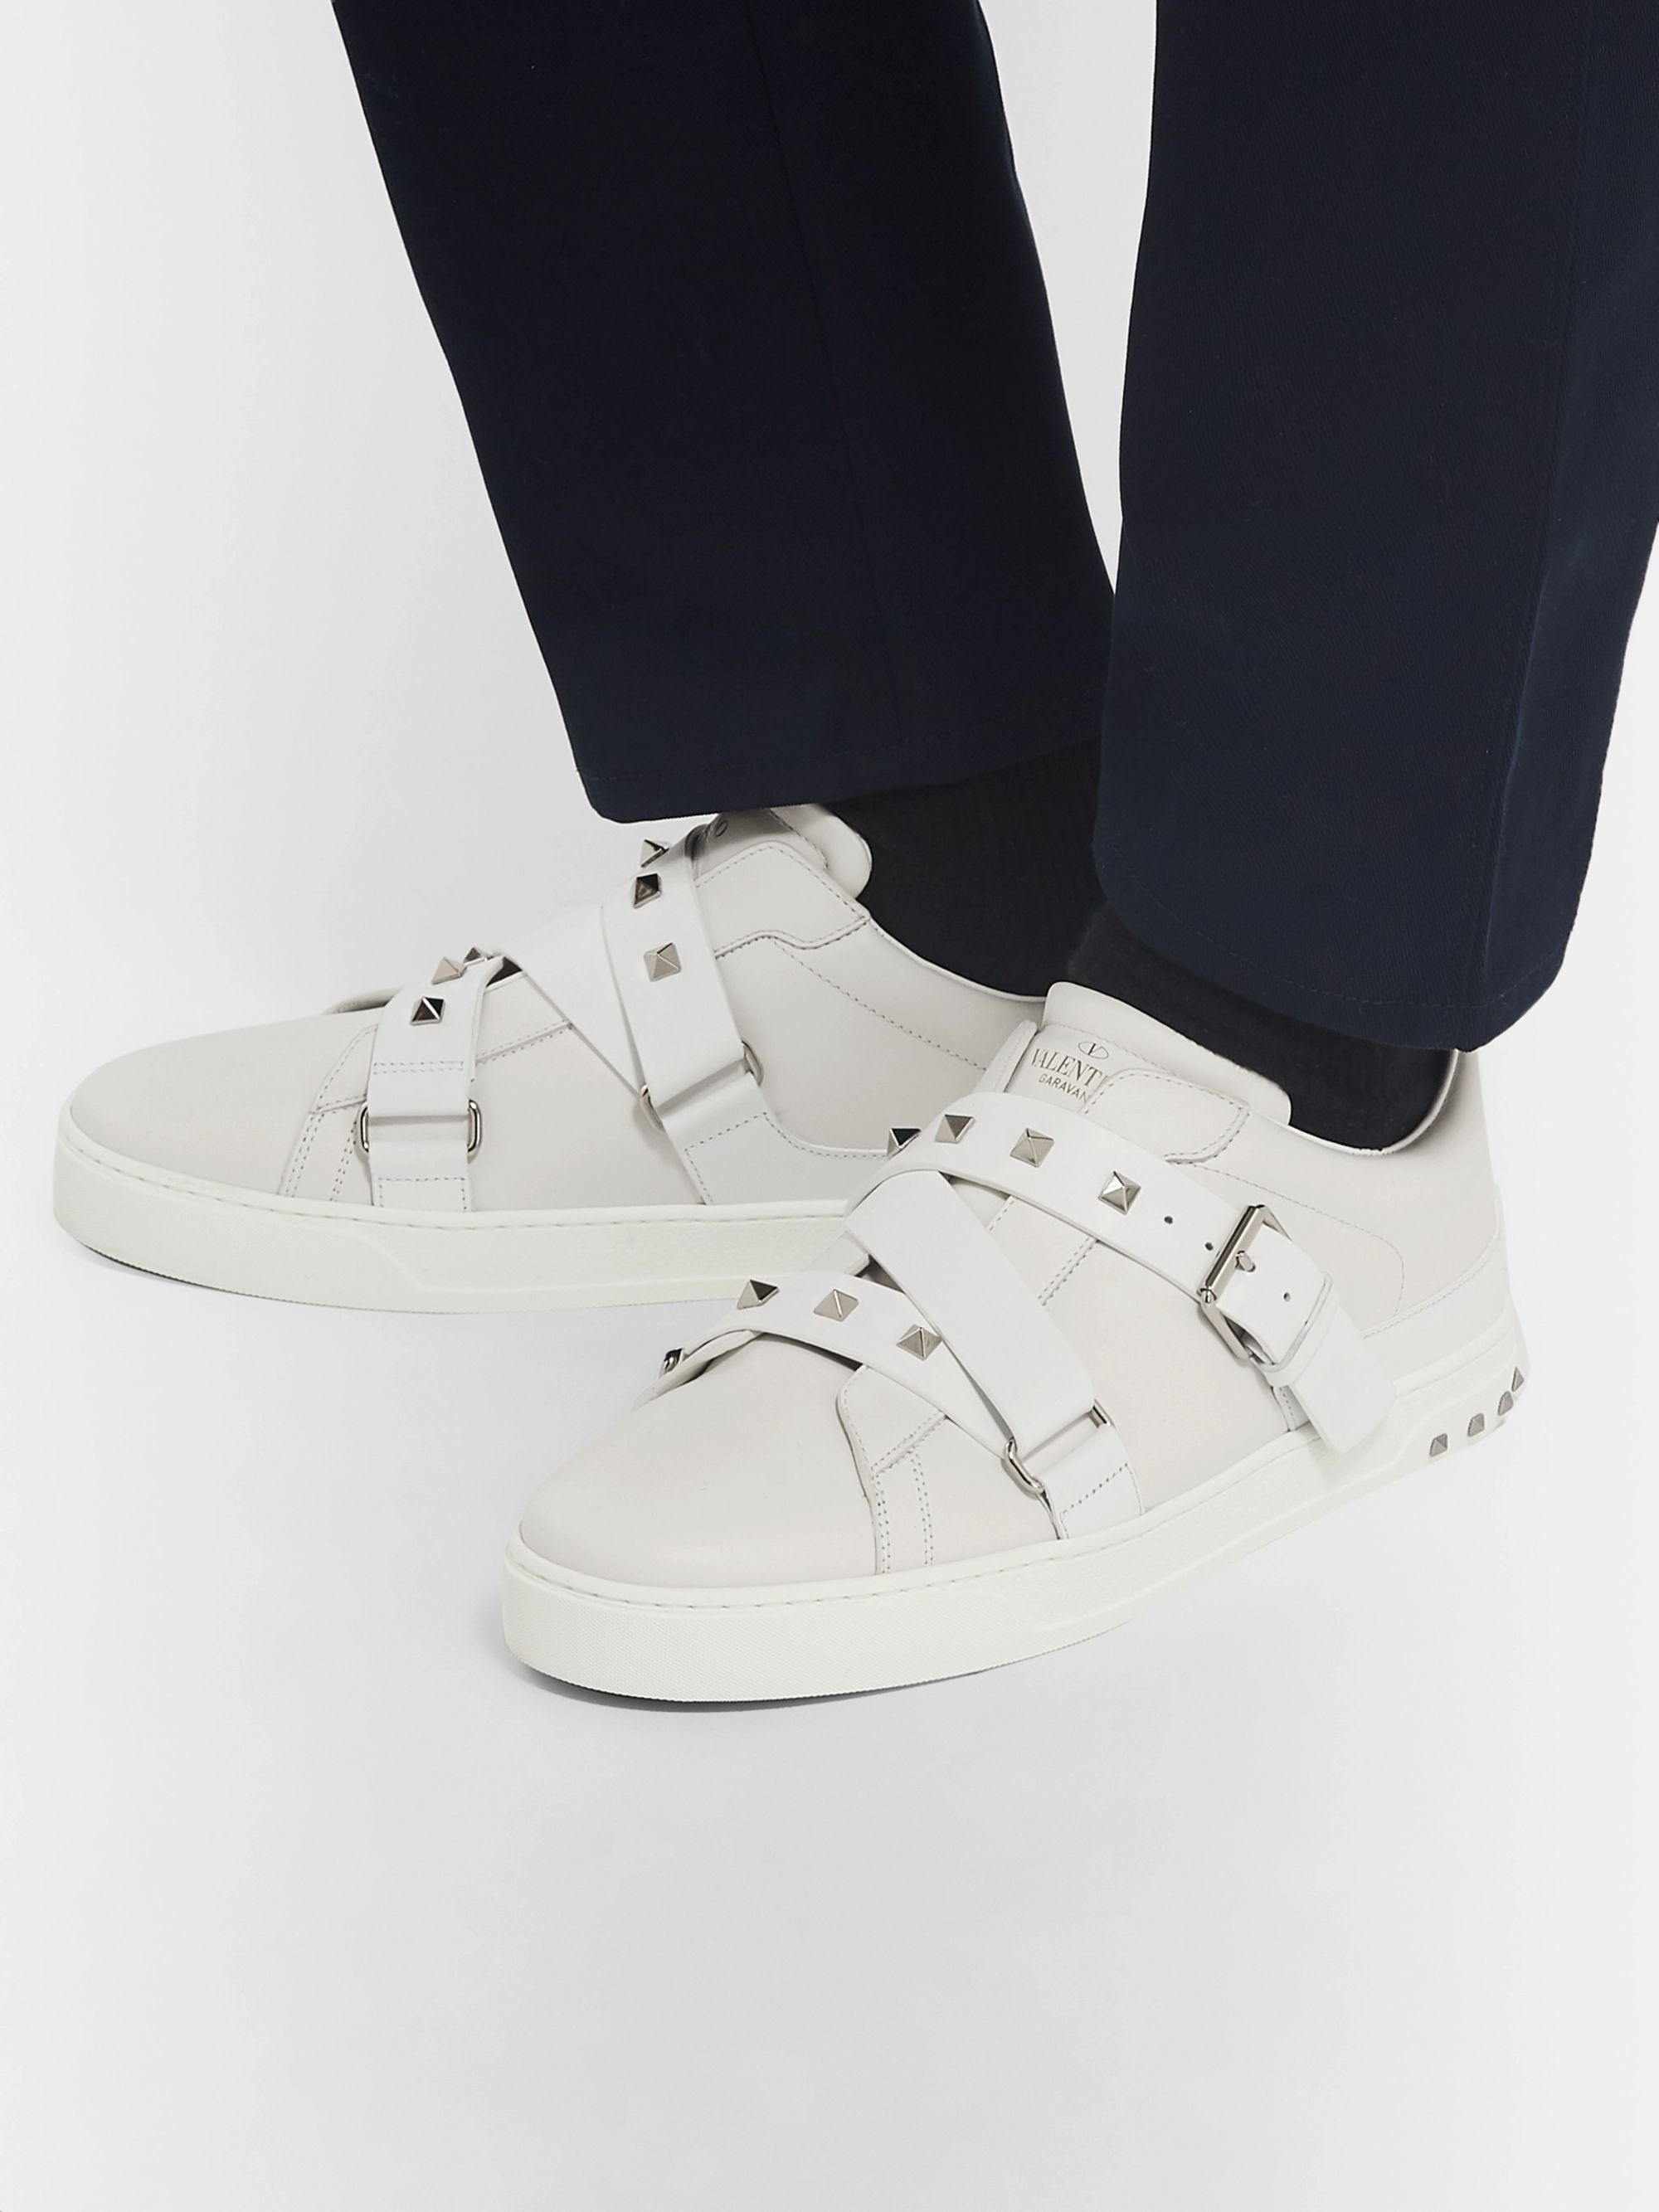 Valentino V Punk Garavani Leather Sneakers K1JFcTl